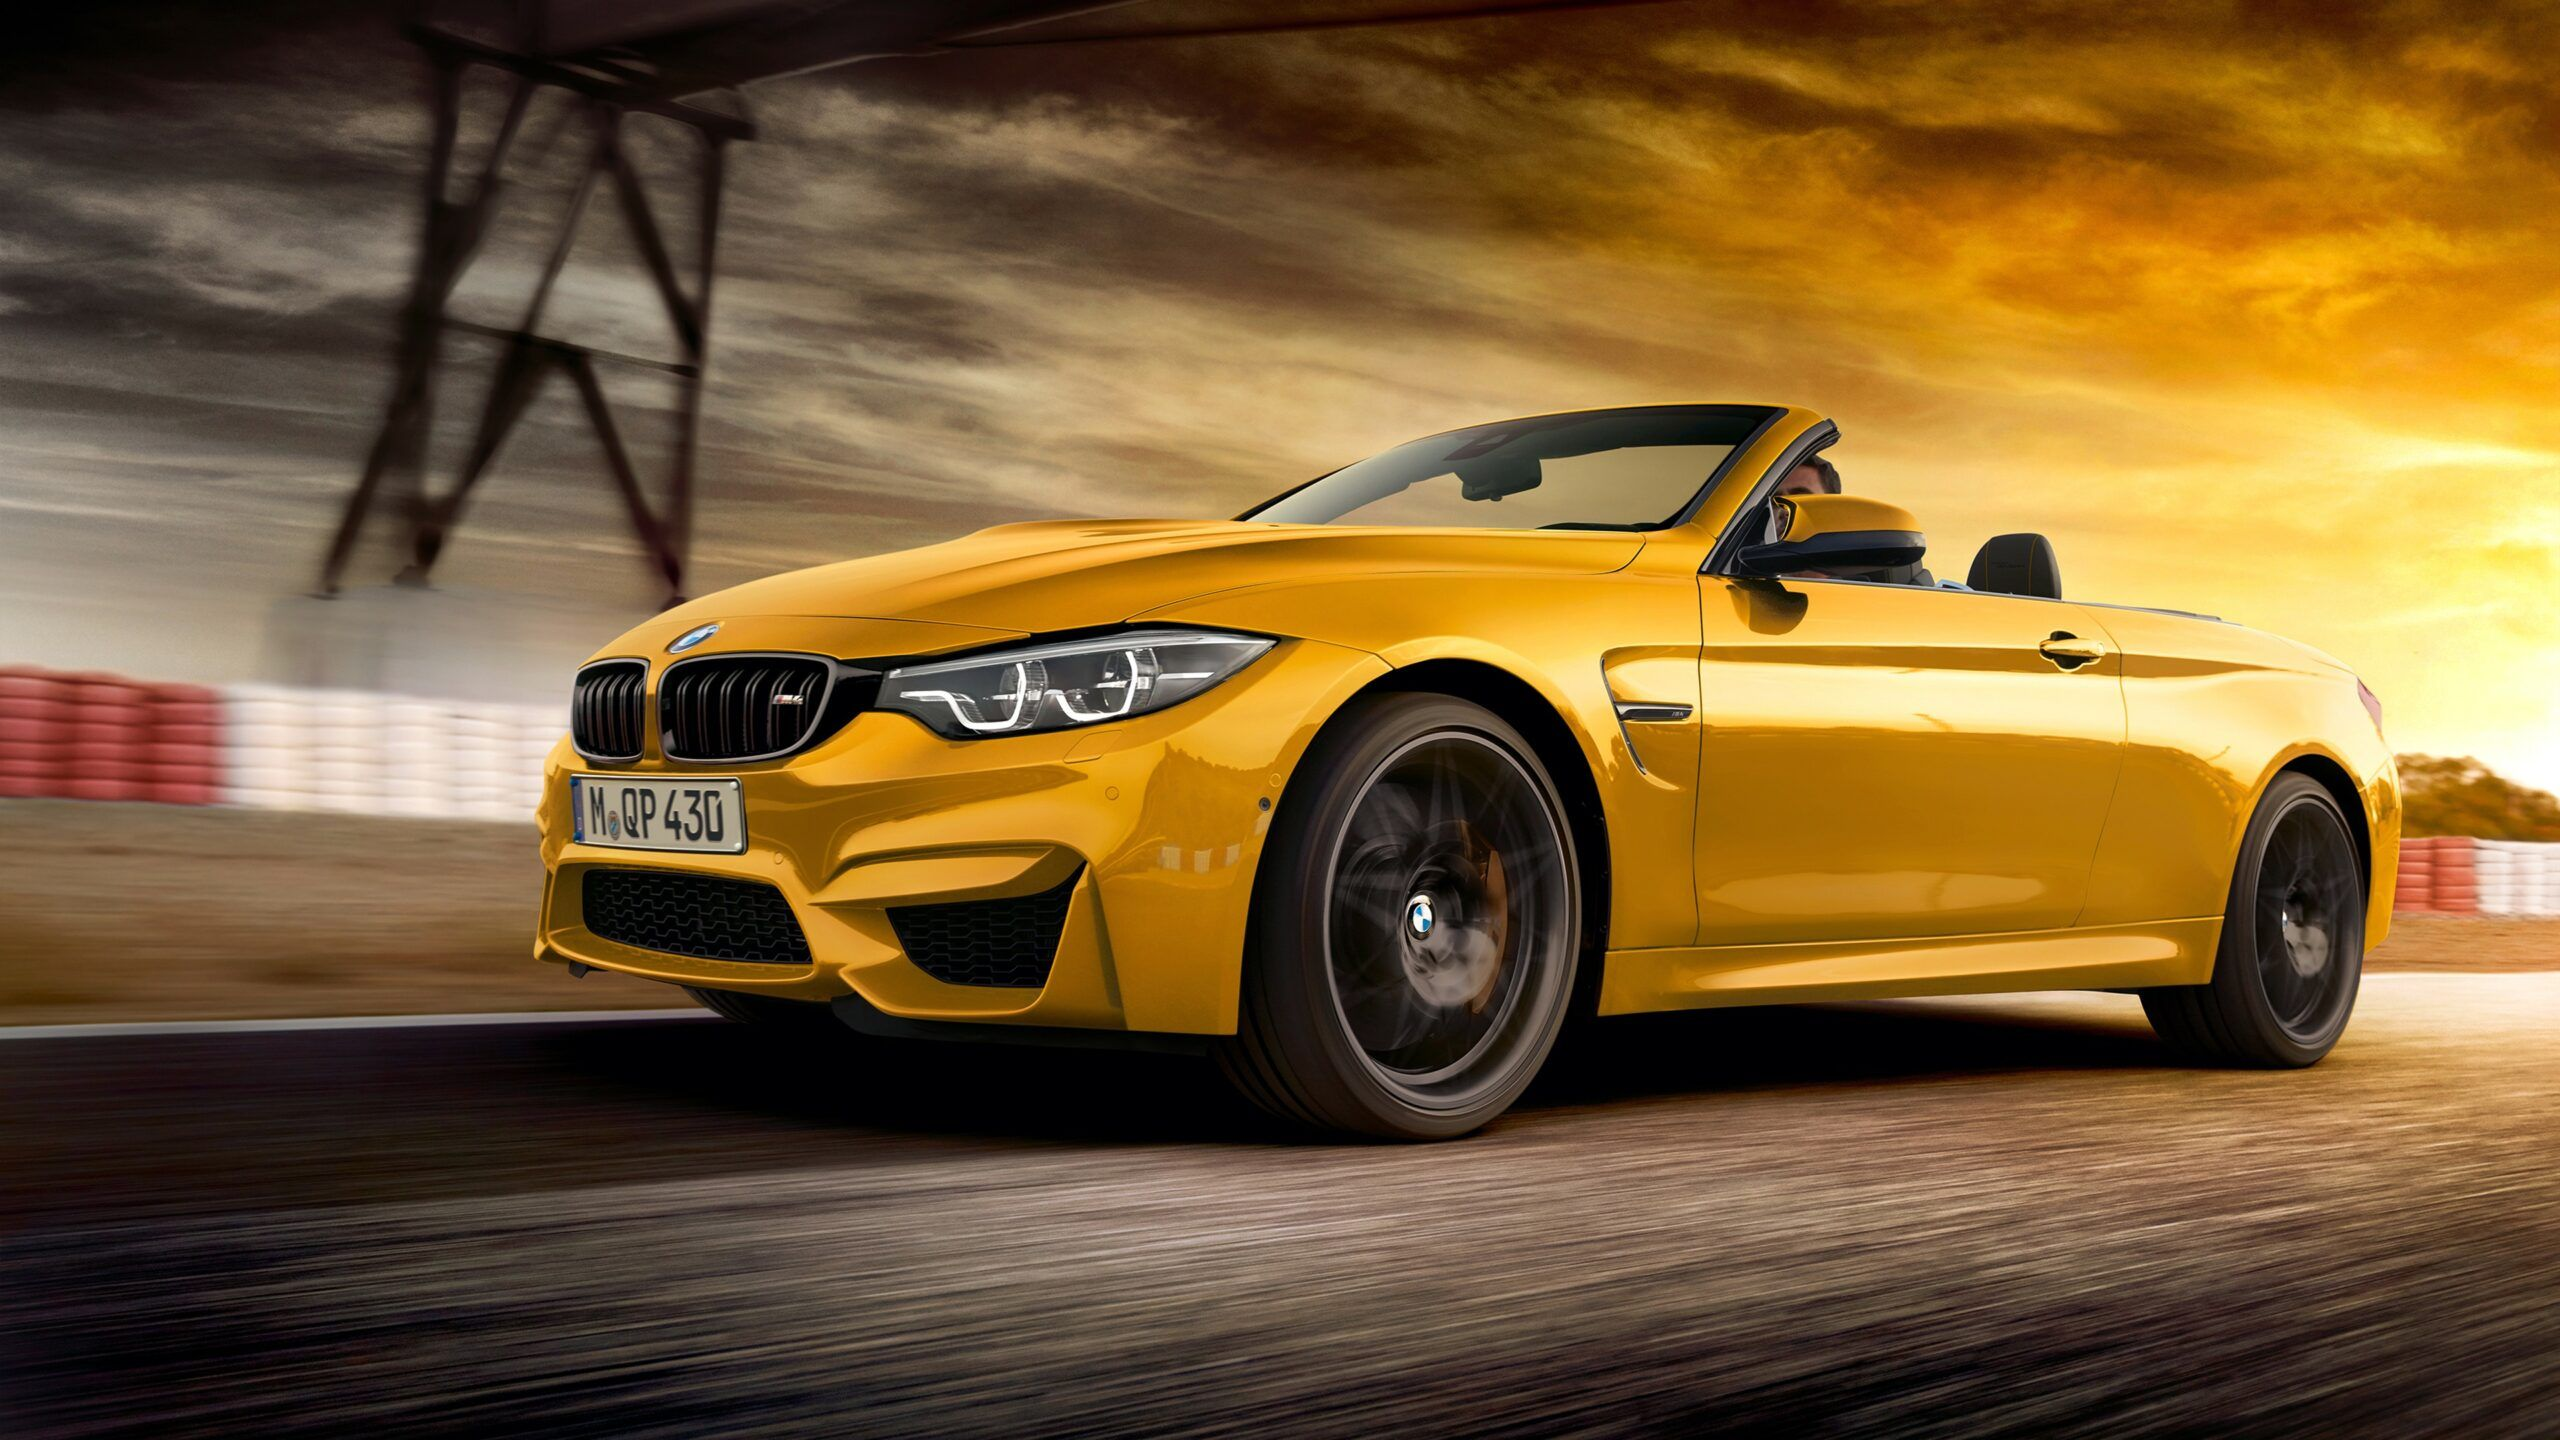 Bmw M4 Convertible Wallpaper 4k In 2020 Bmw M4 Bmw M4 Cabrio Bmw M4 Coupe